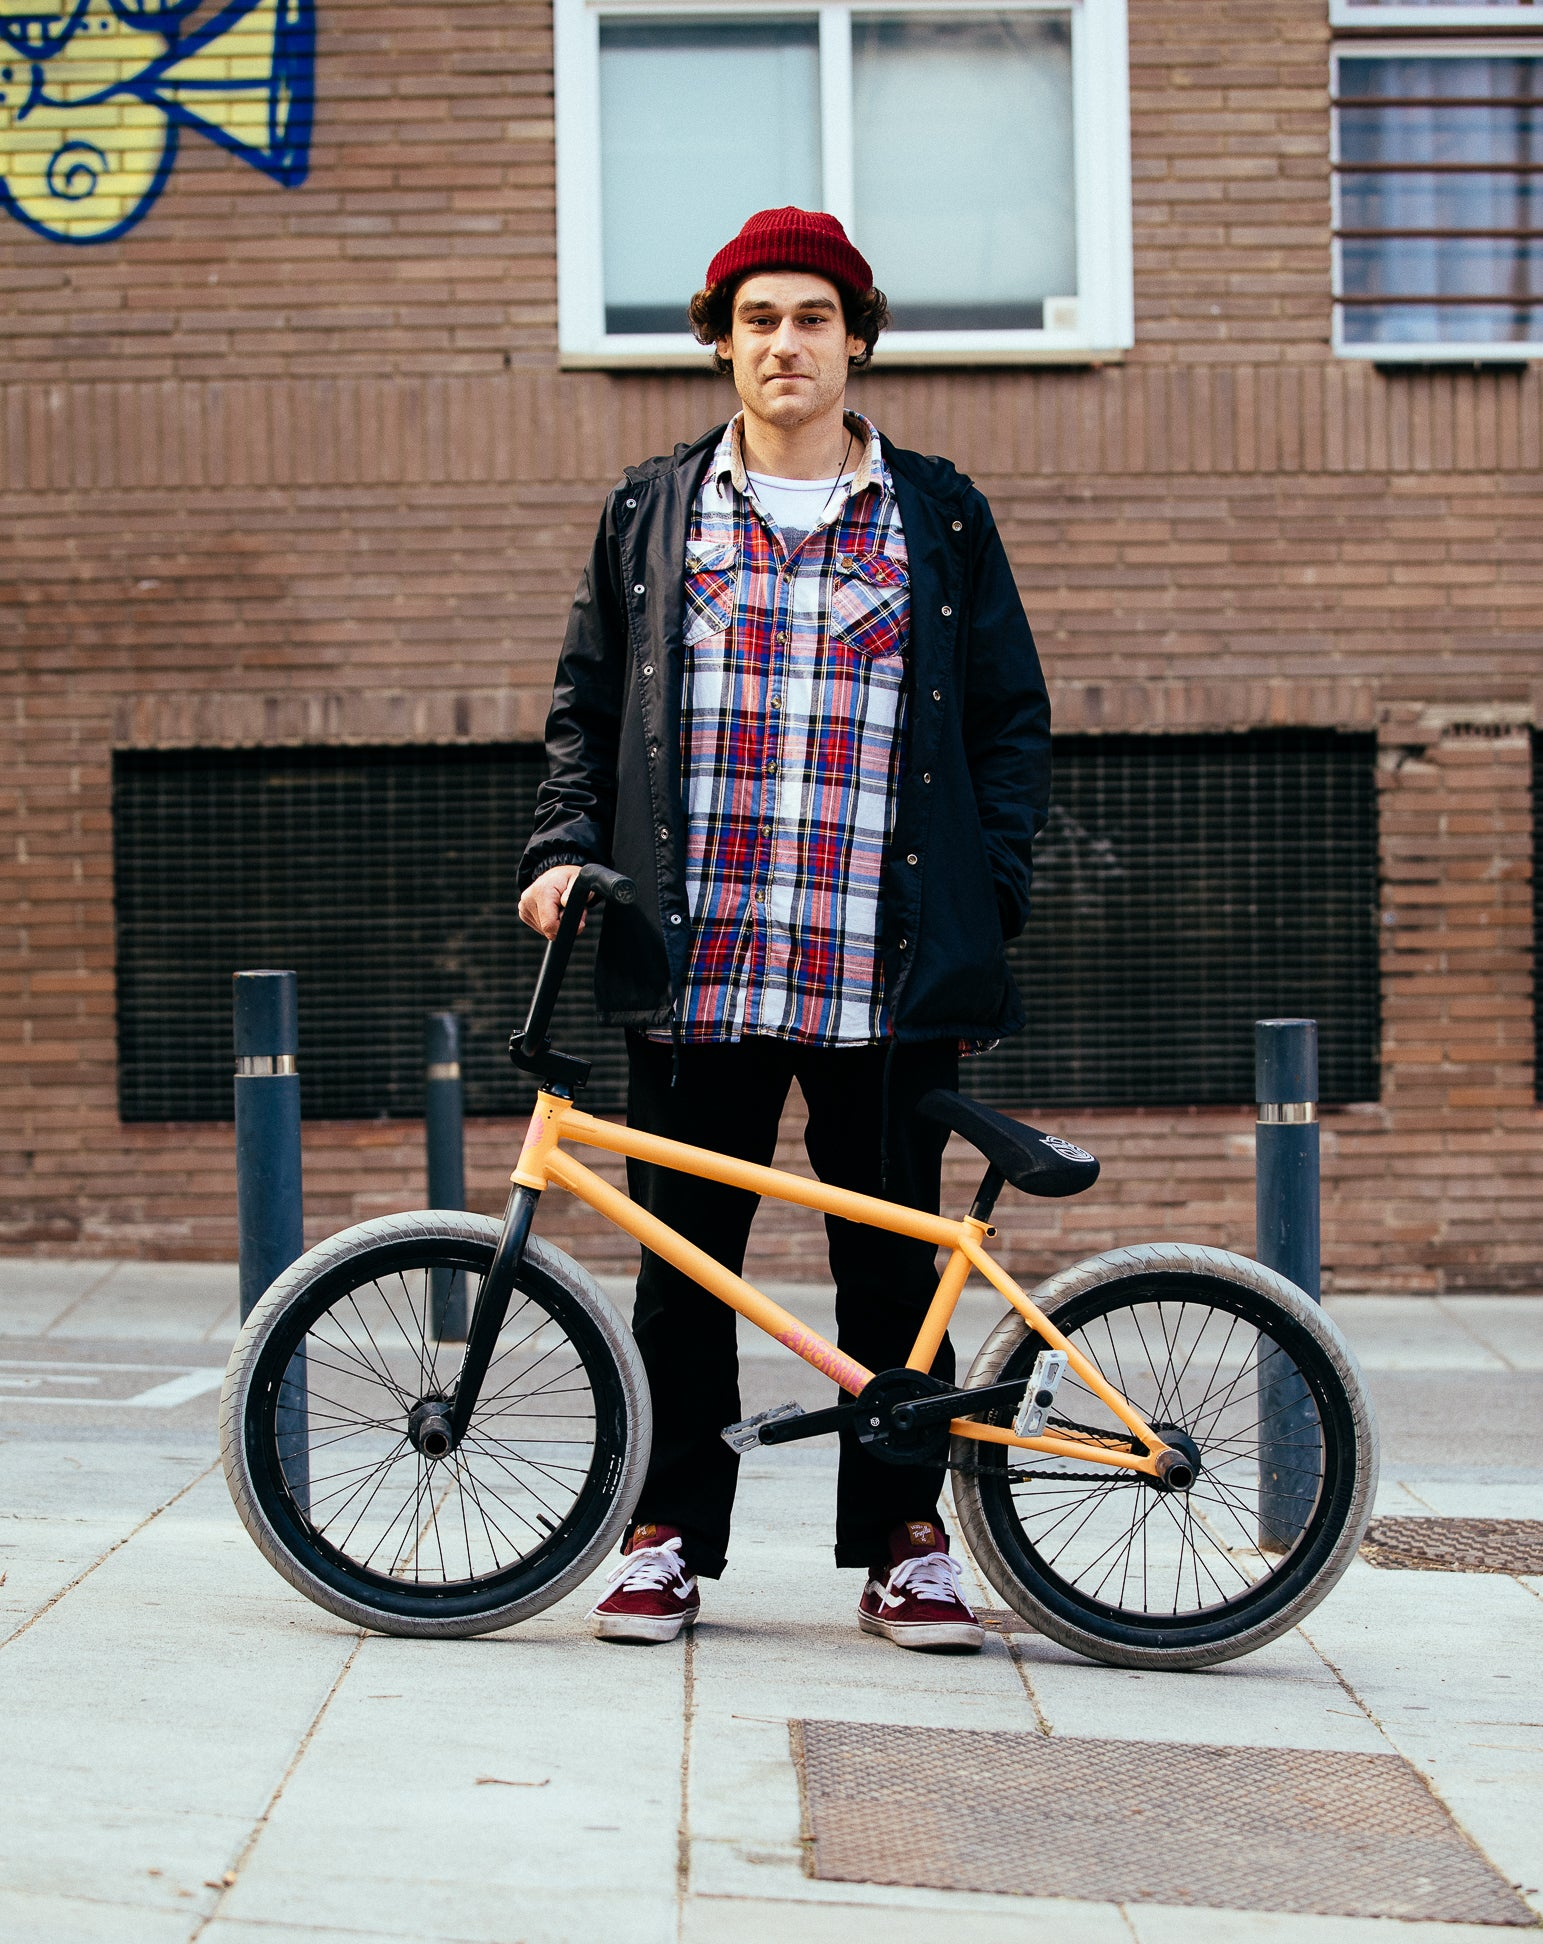 federal-bikes-bmx-michal-smelko-bike-check-1